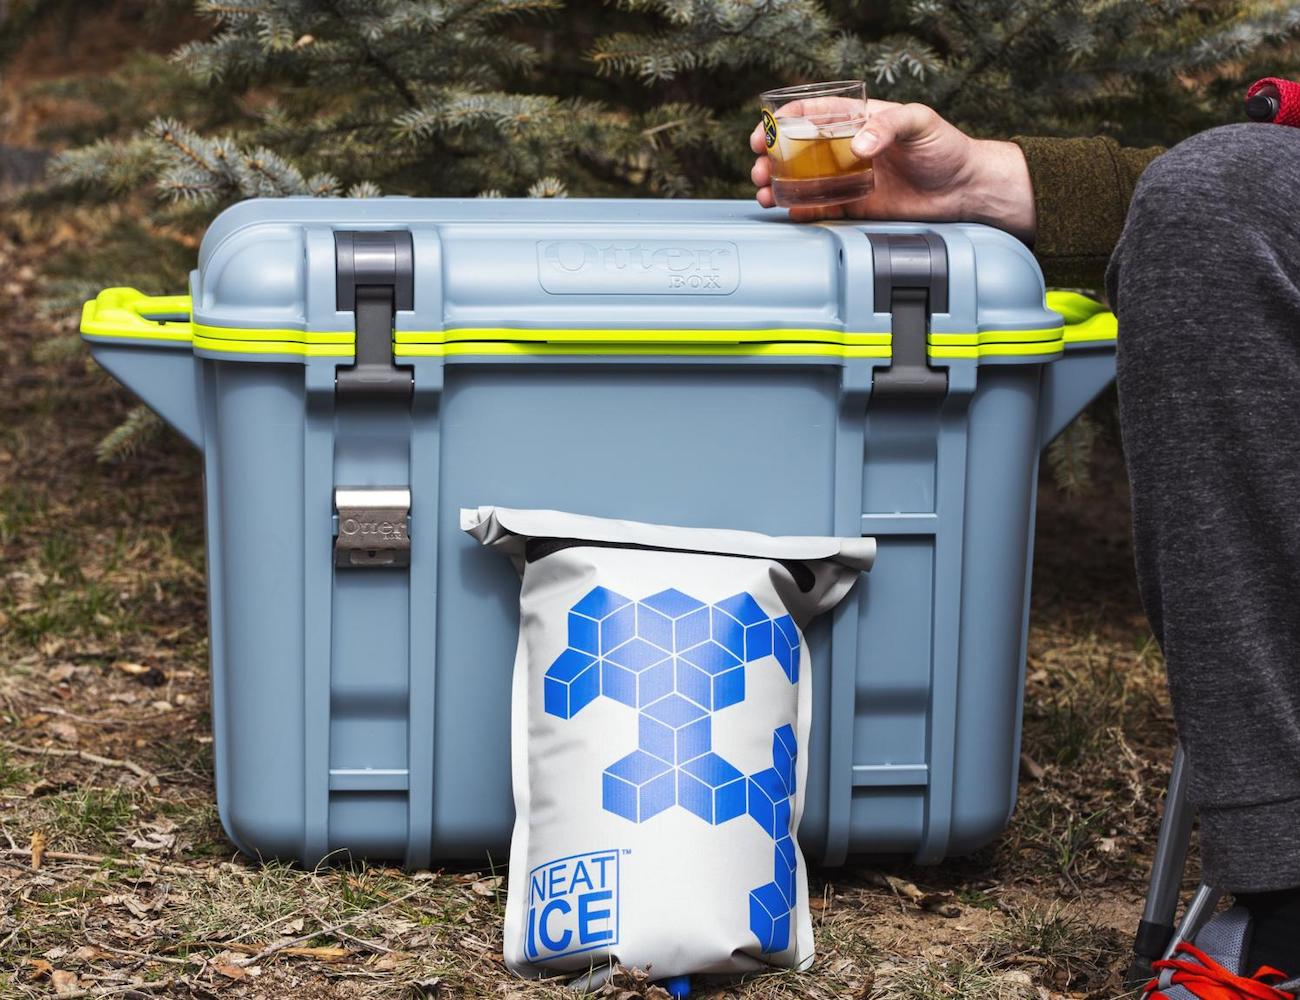 NeatIce Reusable Cooler Bag prevents unnecessary waste of water and single-use plastic